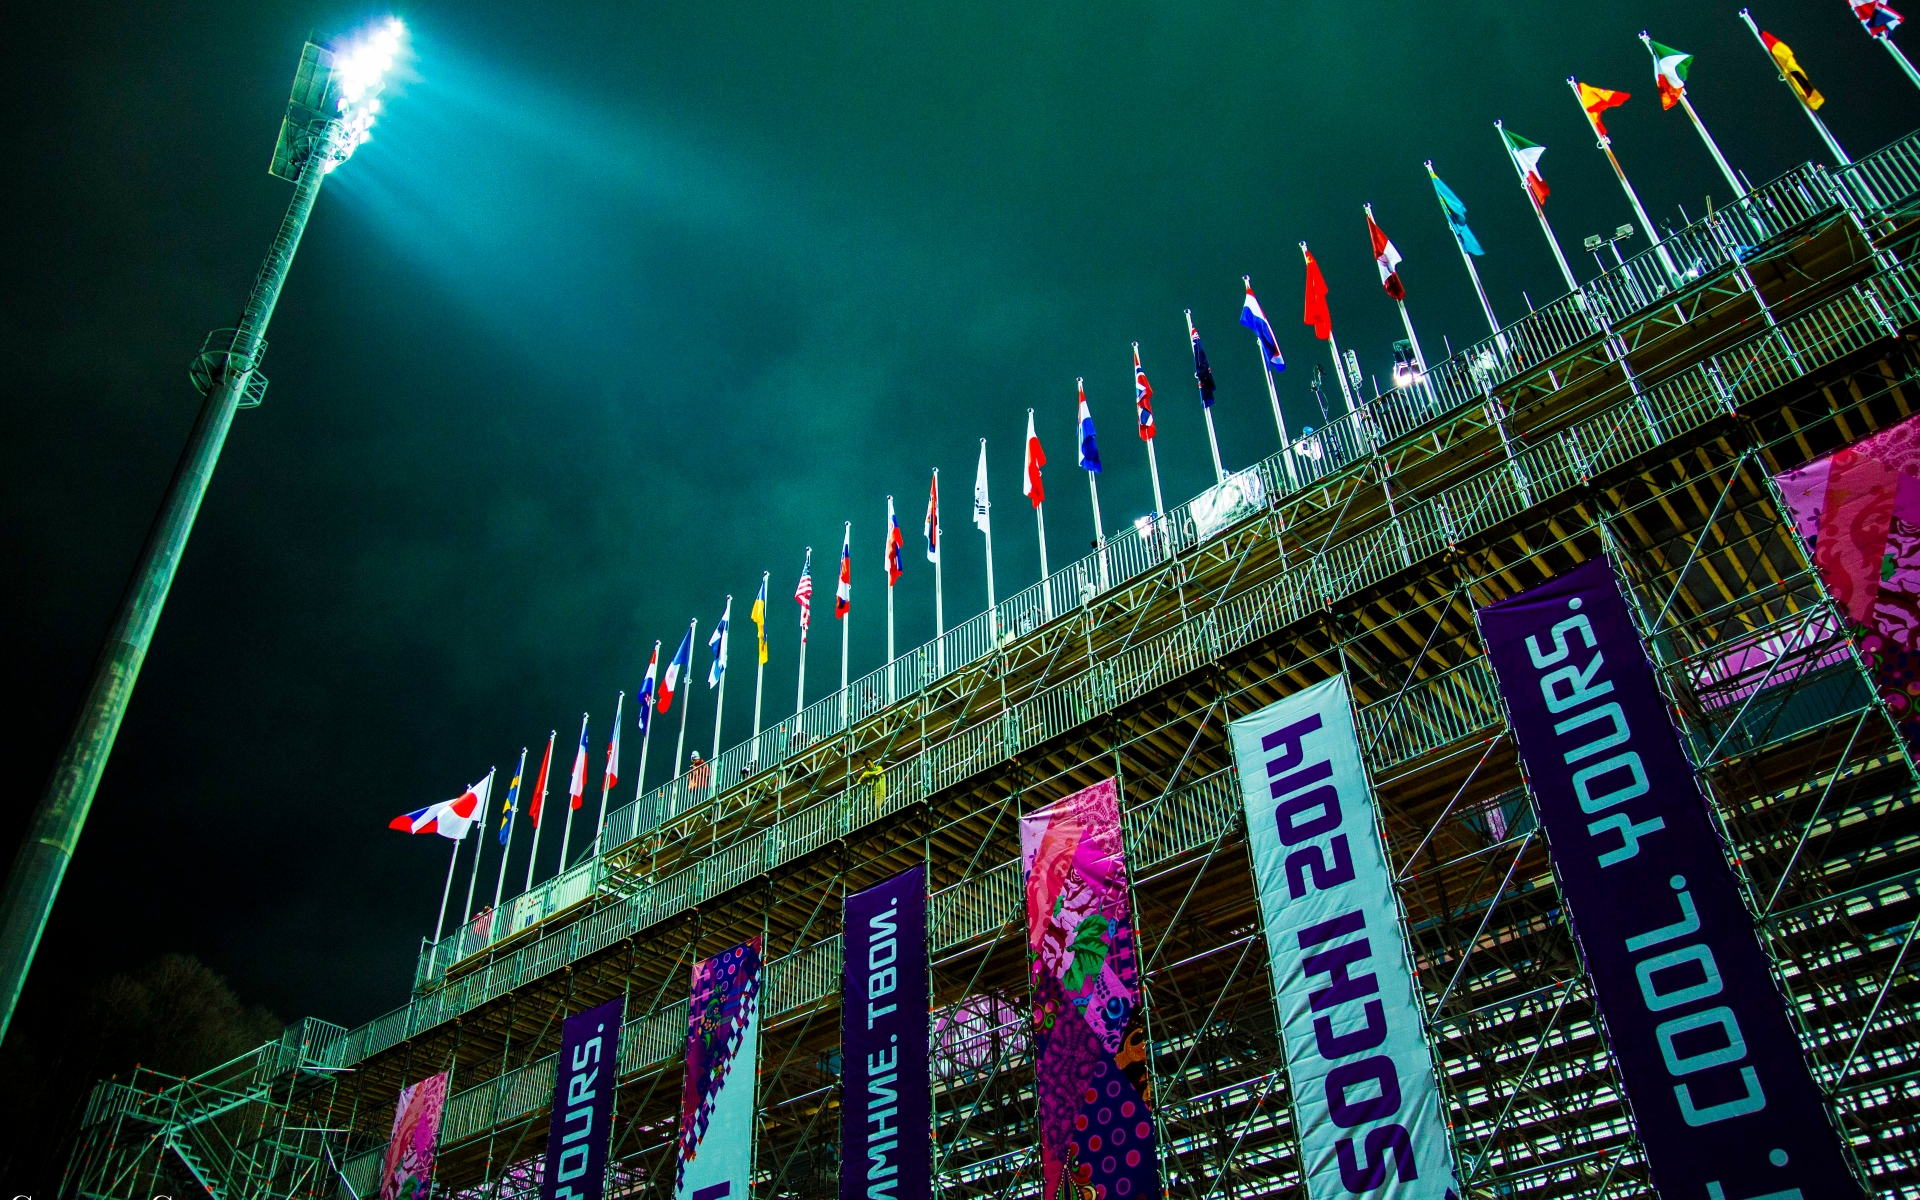 Sochi Flags